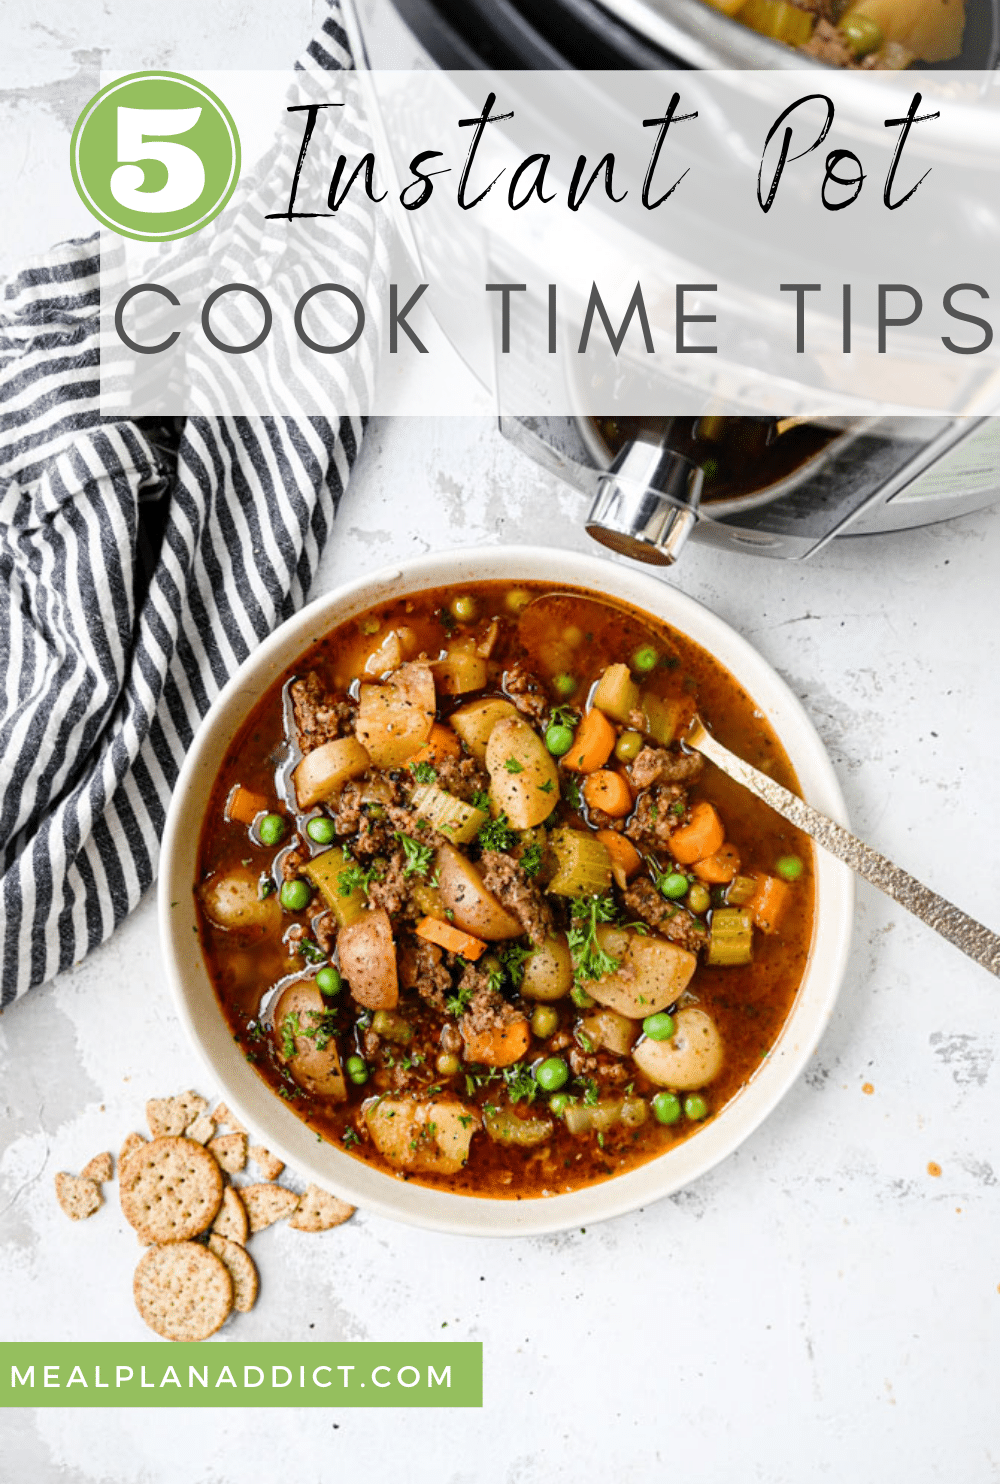 5 Instant Pot Cook Time Tips